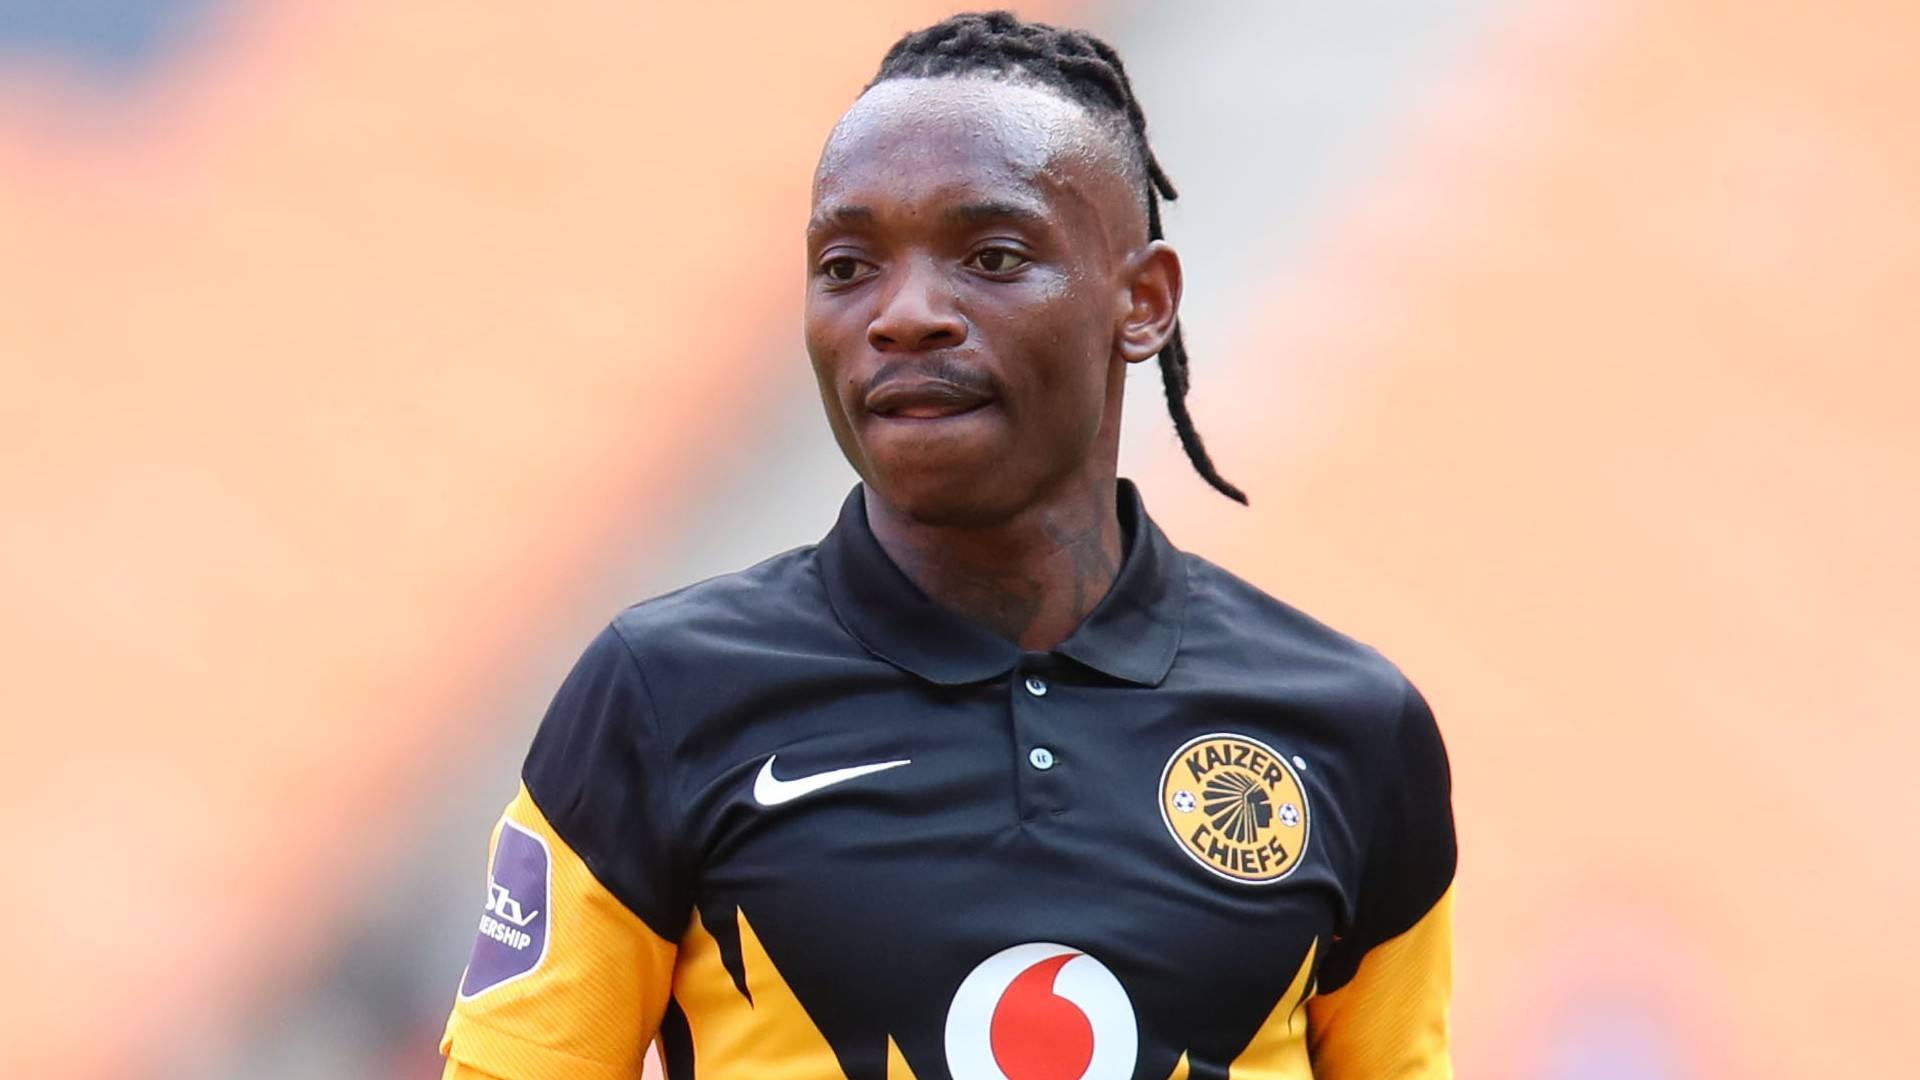 Kaizer Chiefs want to go all the way in the Caf Champions League - Billiat